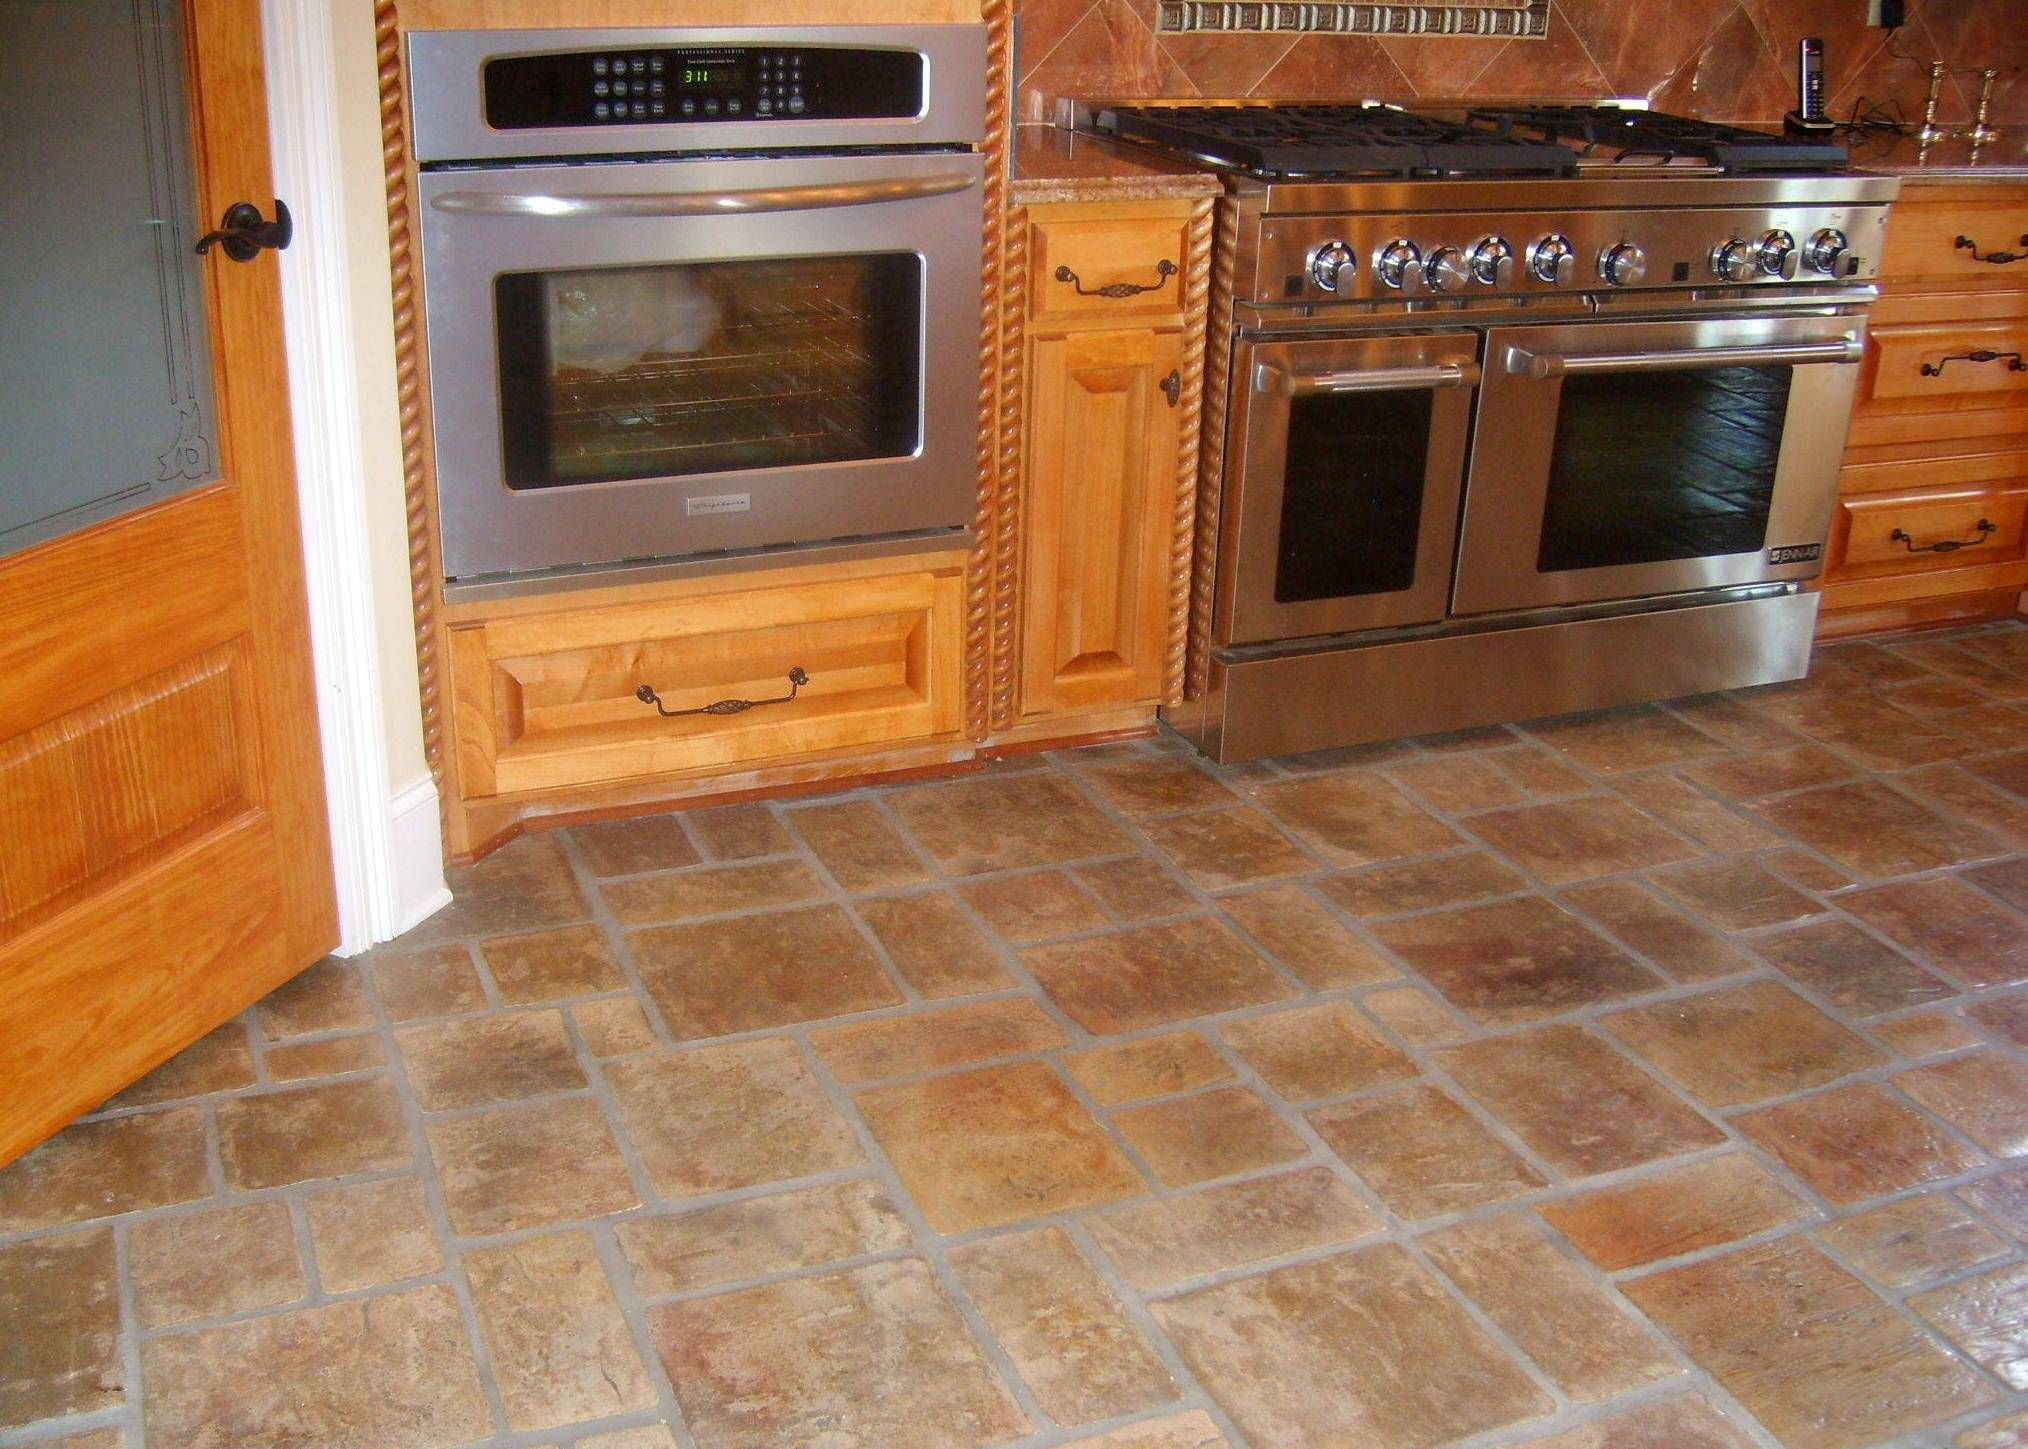 Brick look flooring 1000 images about flooring on pinterest brick flooring  bricks and stone tile flooring  Brick Look Flooring  Zamp co. Flooring Ideas For Kitchen. Home Design Ideas